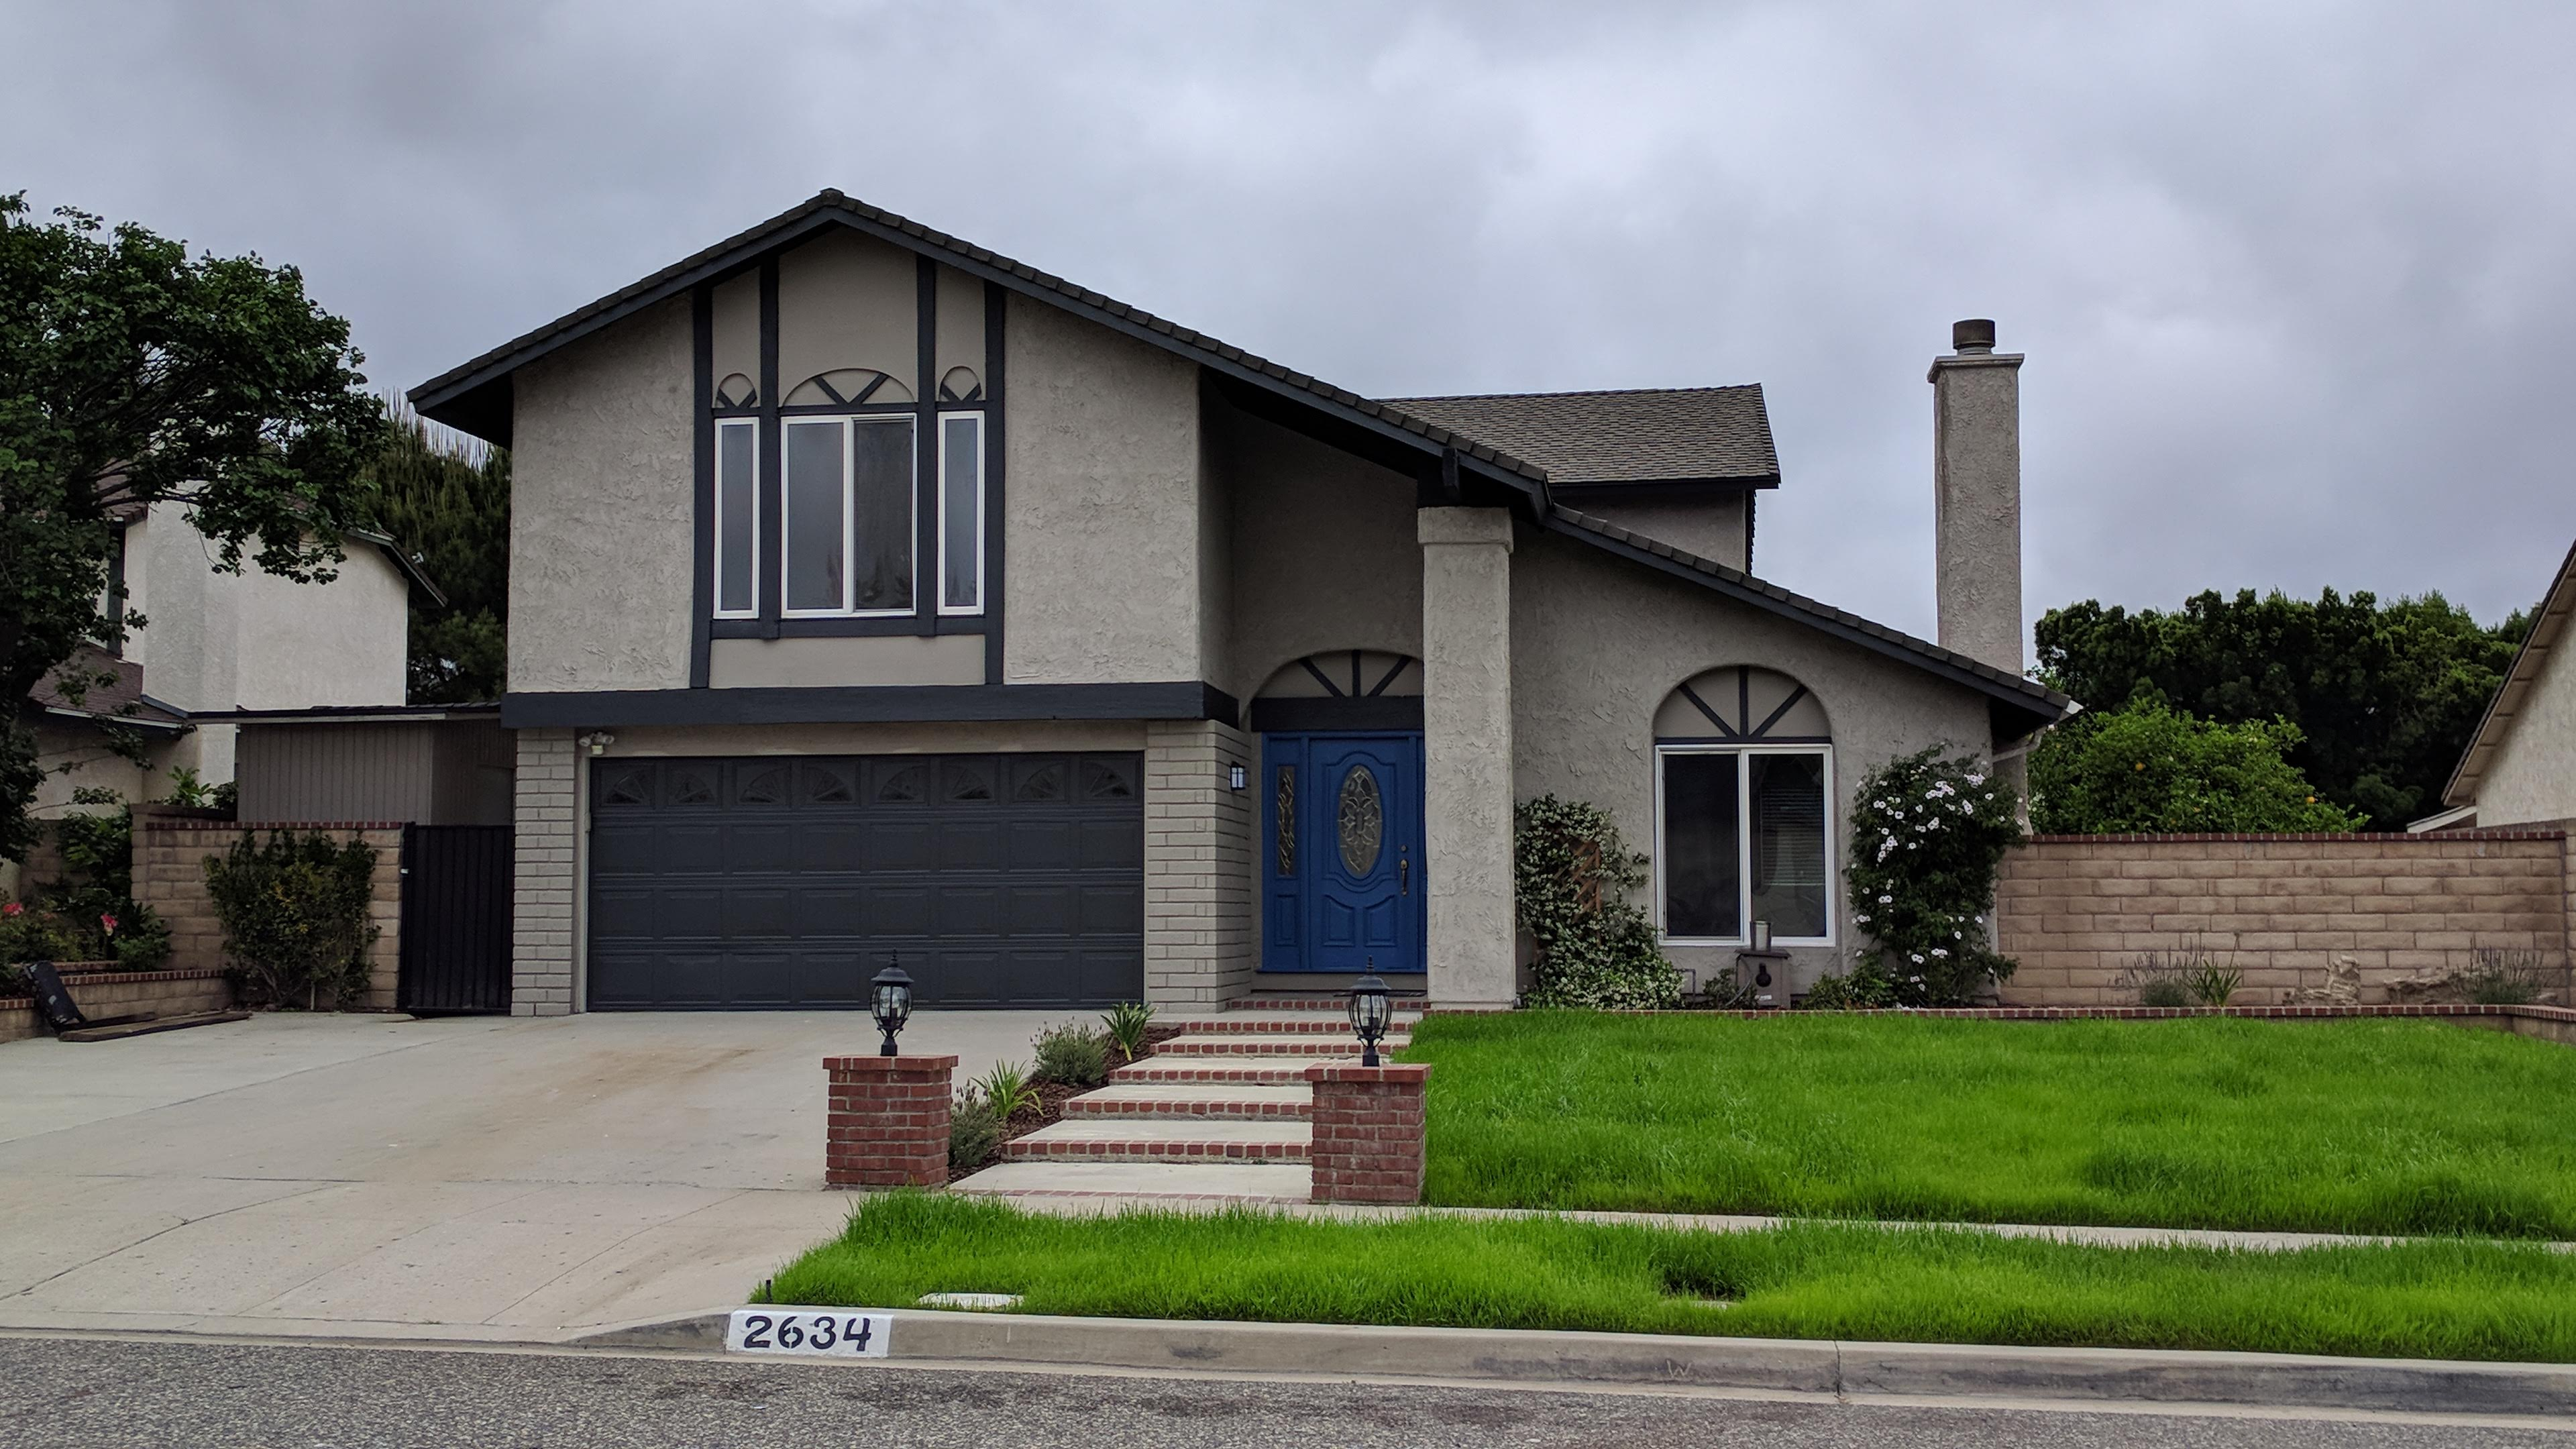 2634 Trenley Court, Simi Valley- The Upstairs 28